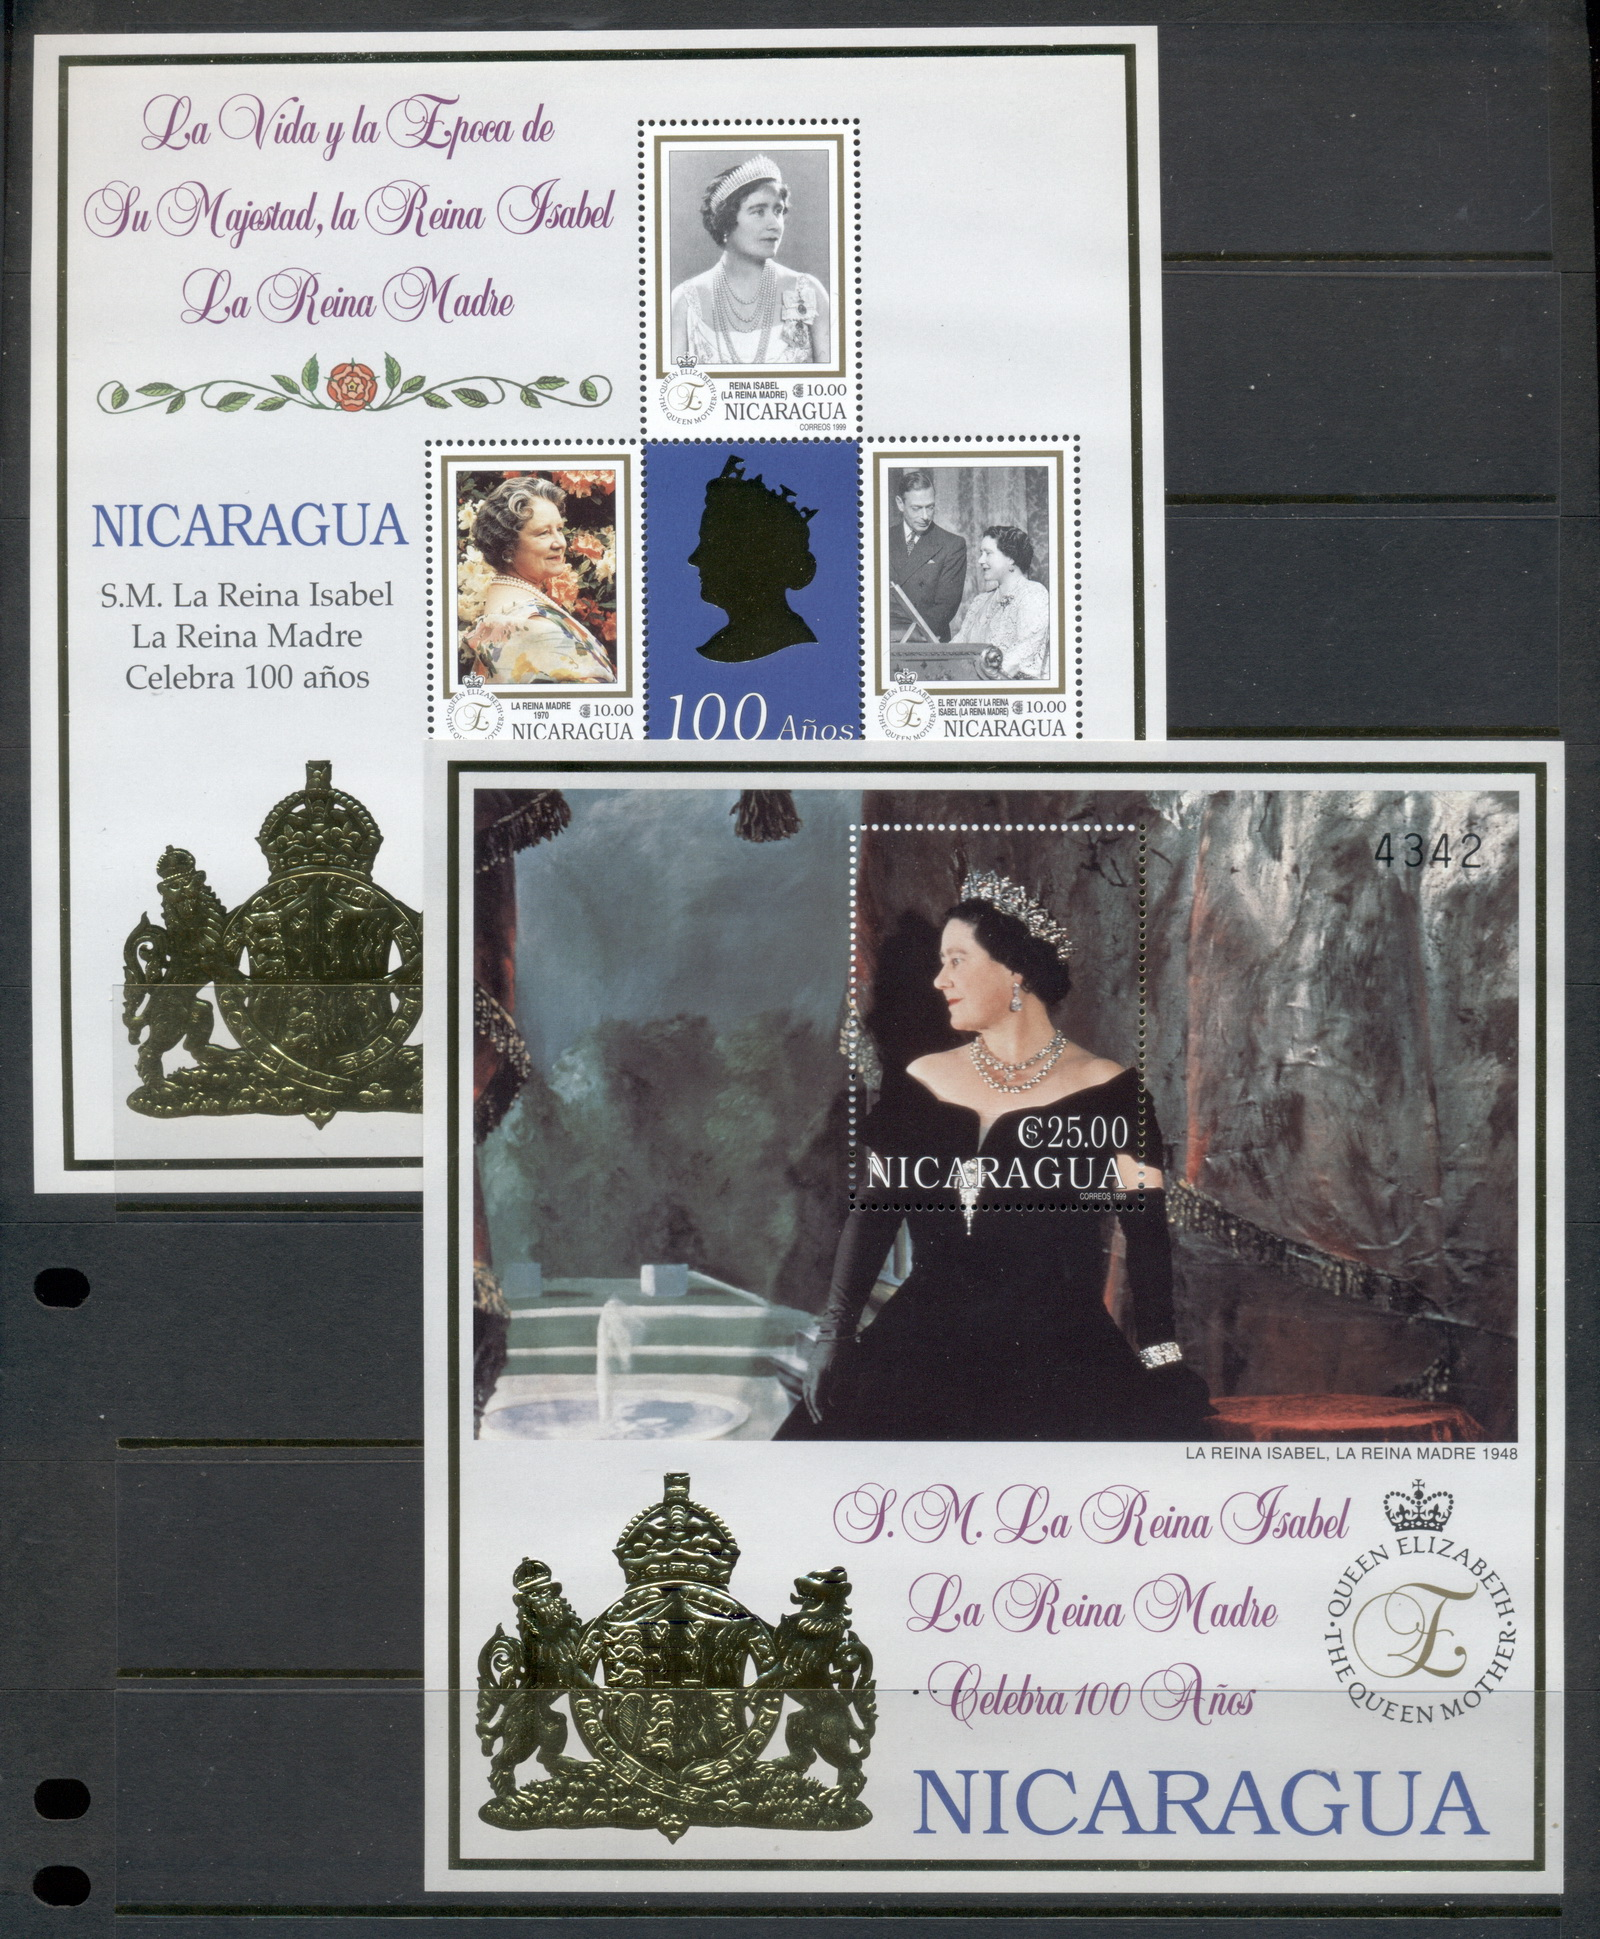 Nicaragua 1999 Queen Mother 100th Birthday gold foil embossed 2xMS MUH - Click Image to Close